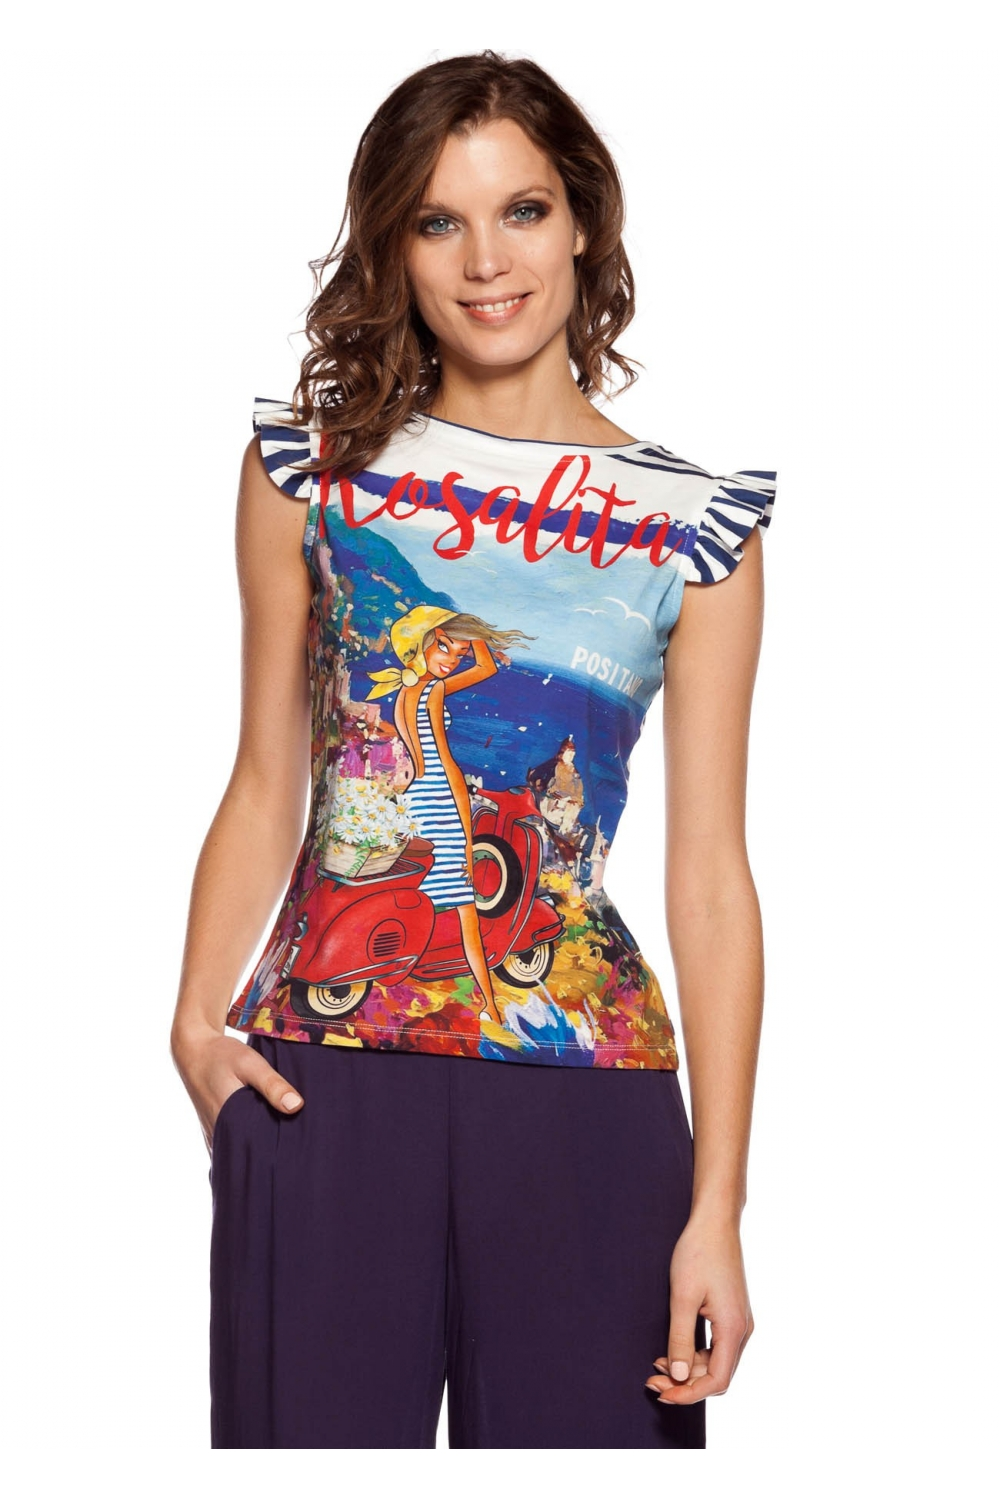 df996f03 T-shirt printed with painting, positano landscape, and, girl on ...